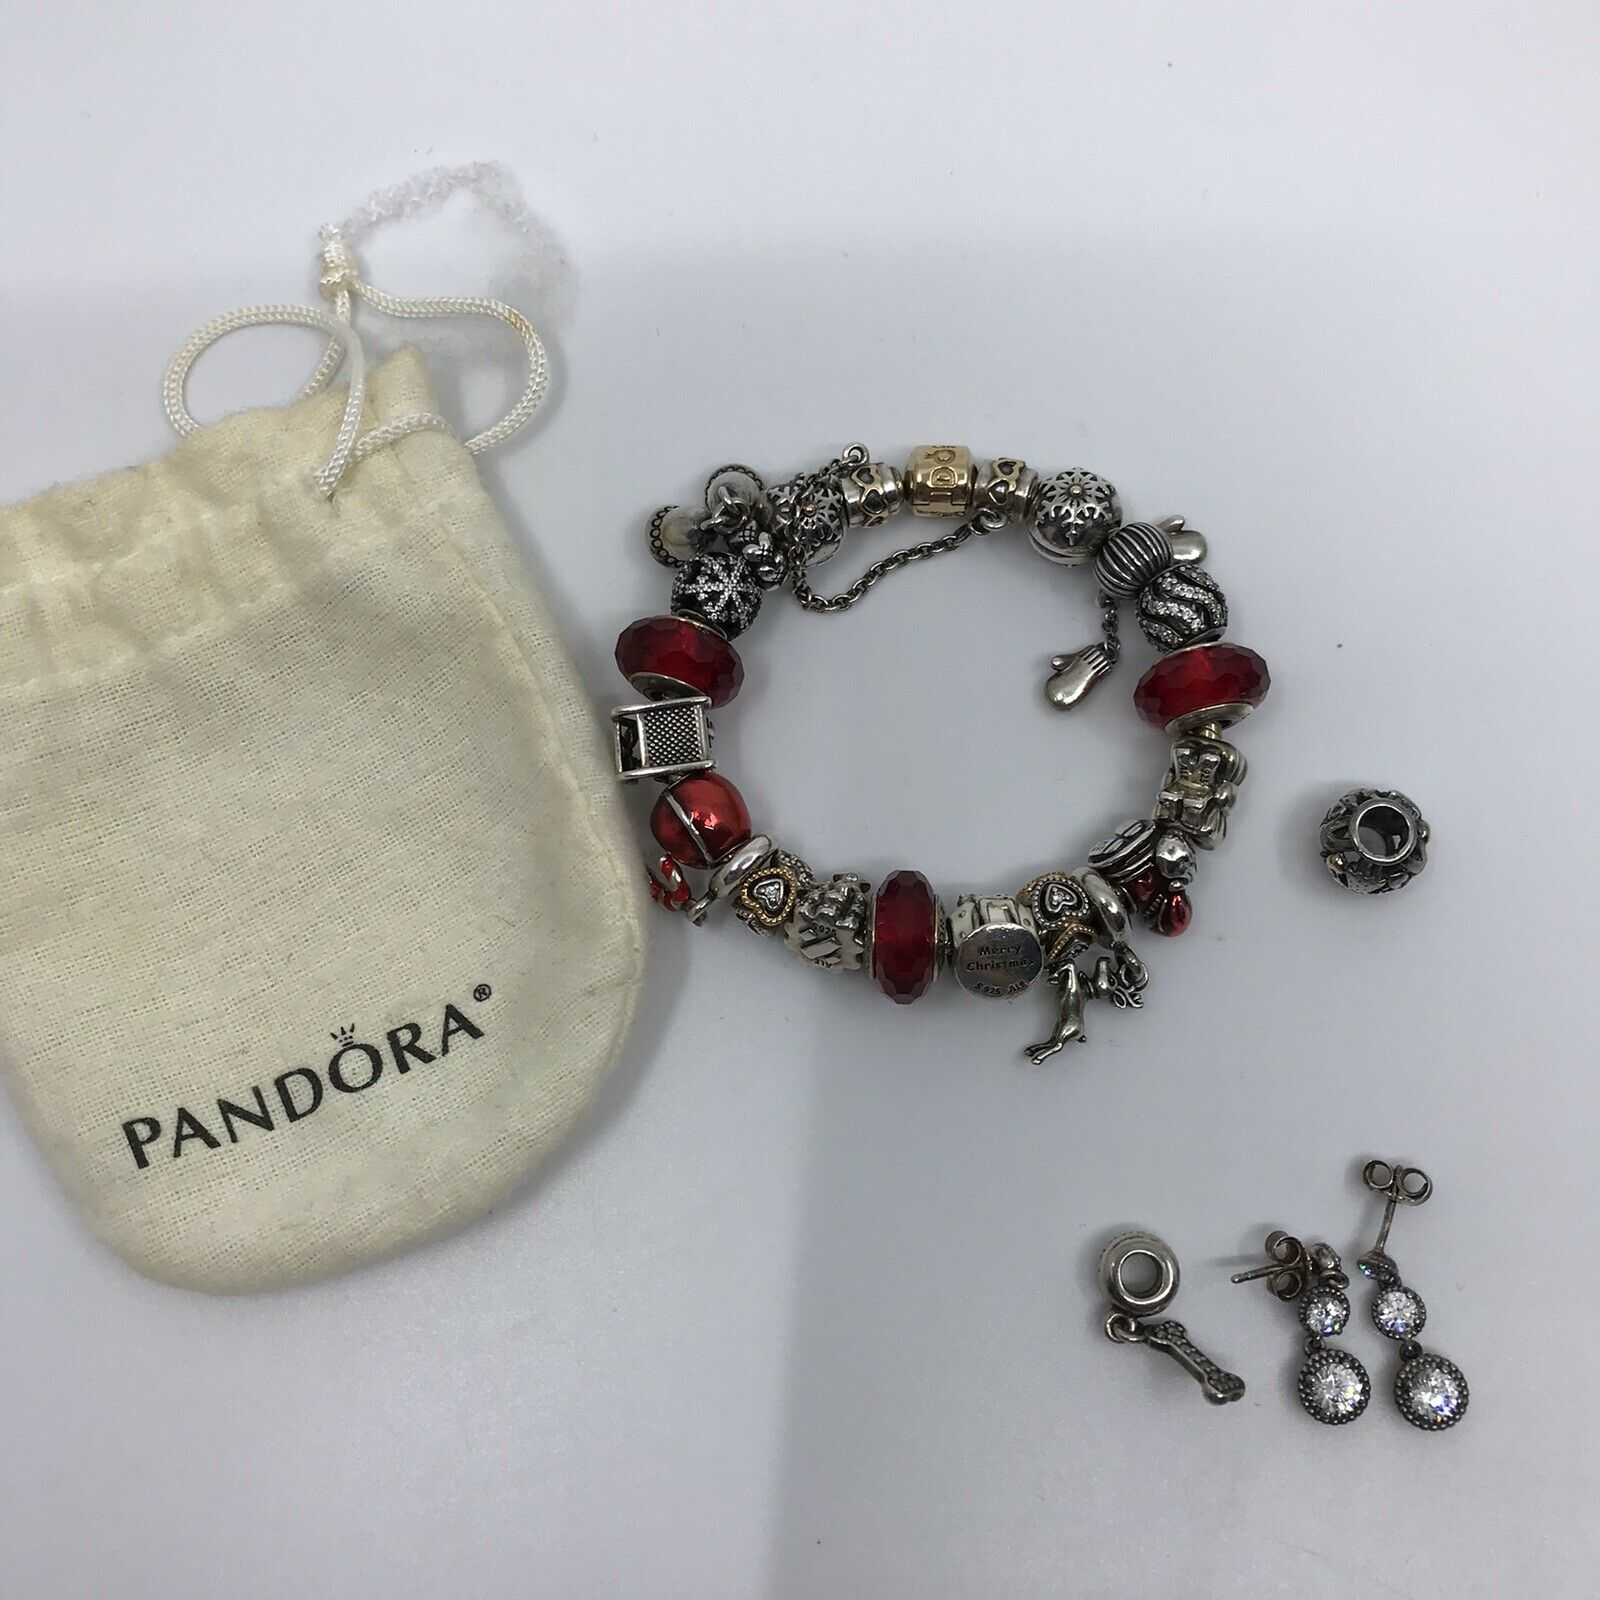 PANDORA Bracelet w/ Charms and Earrings